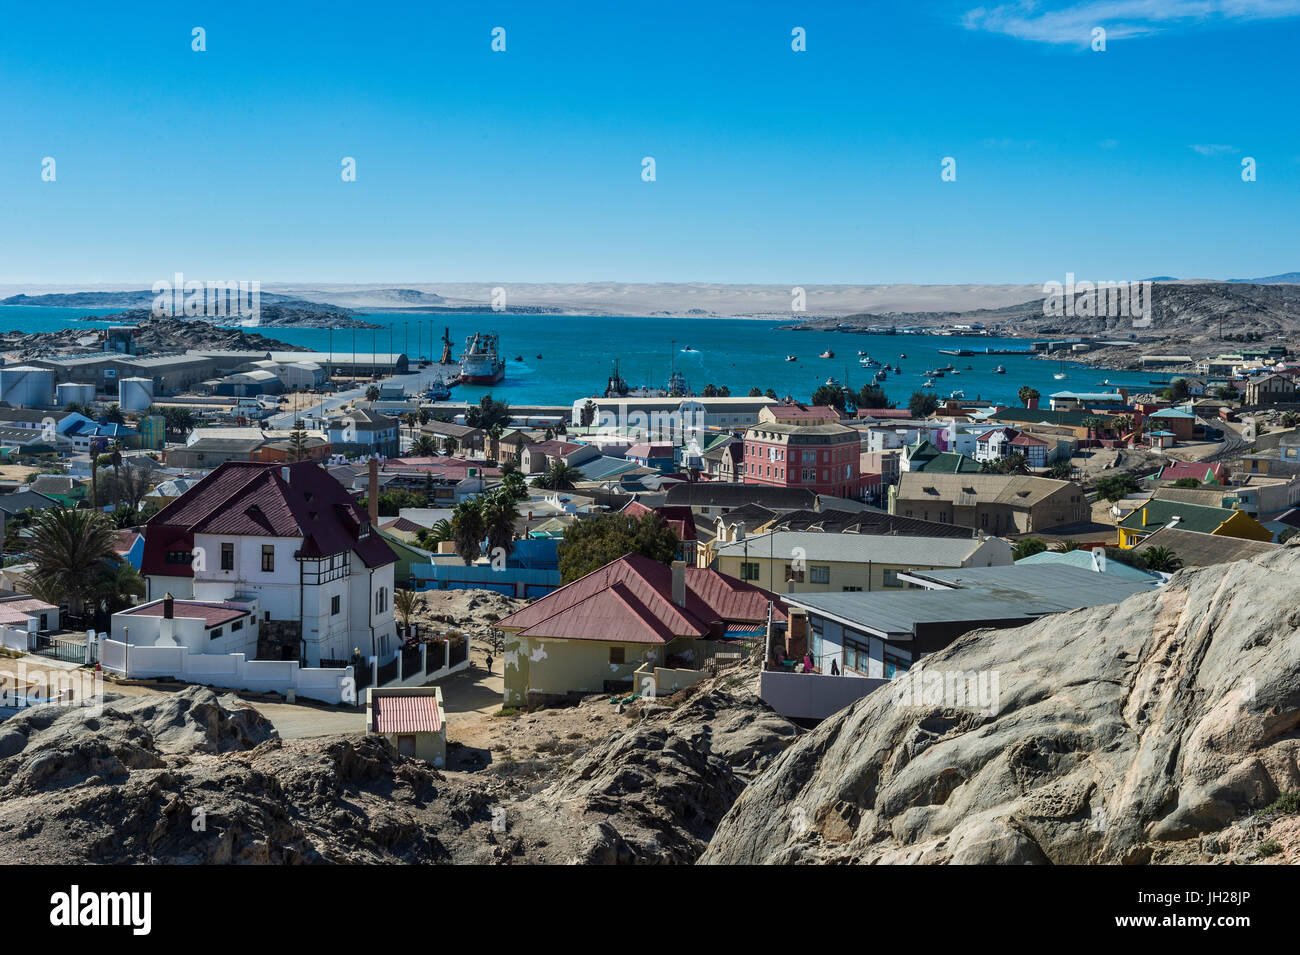 View over Luderitz, Namibia, Africa - Stock Image